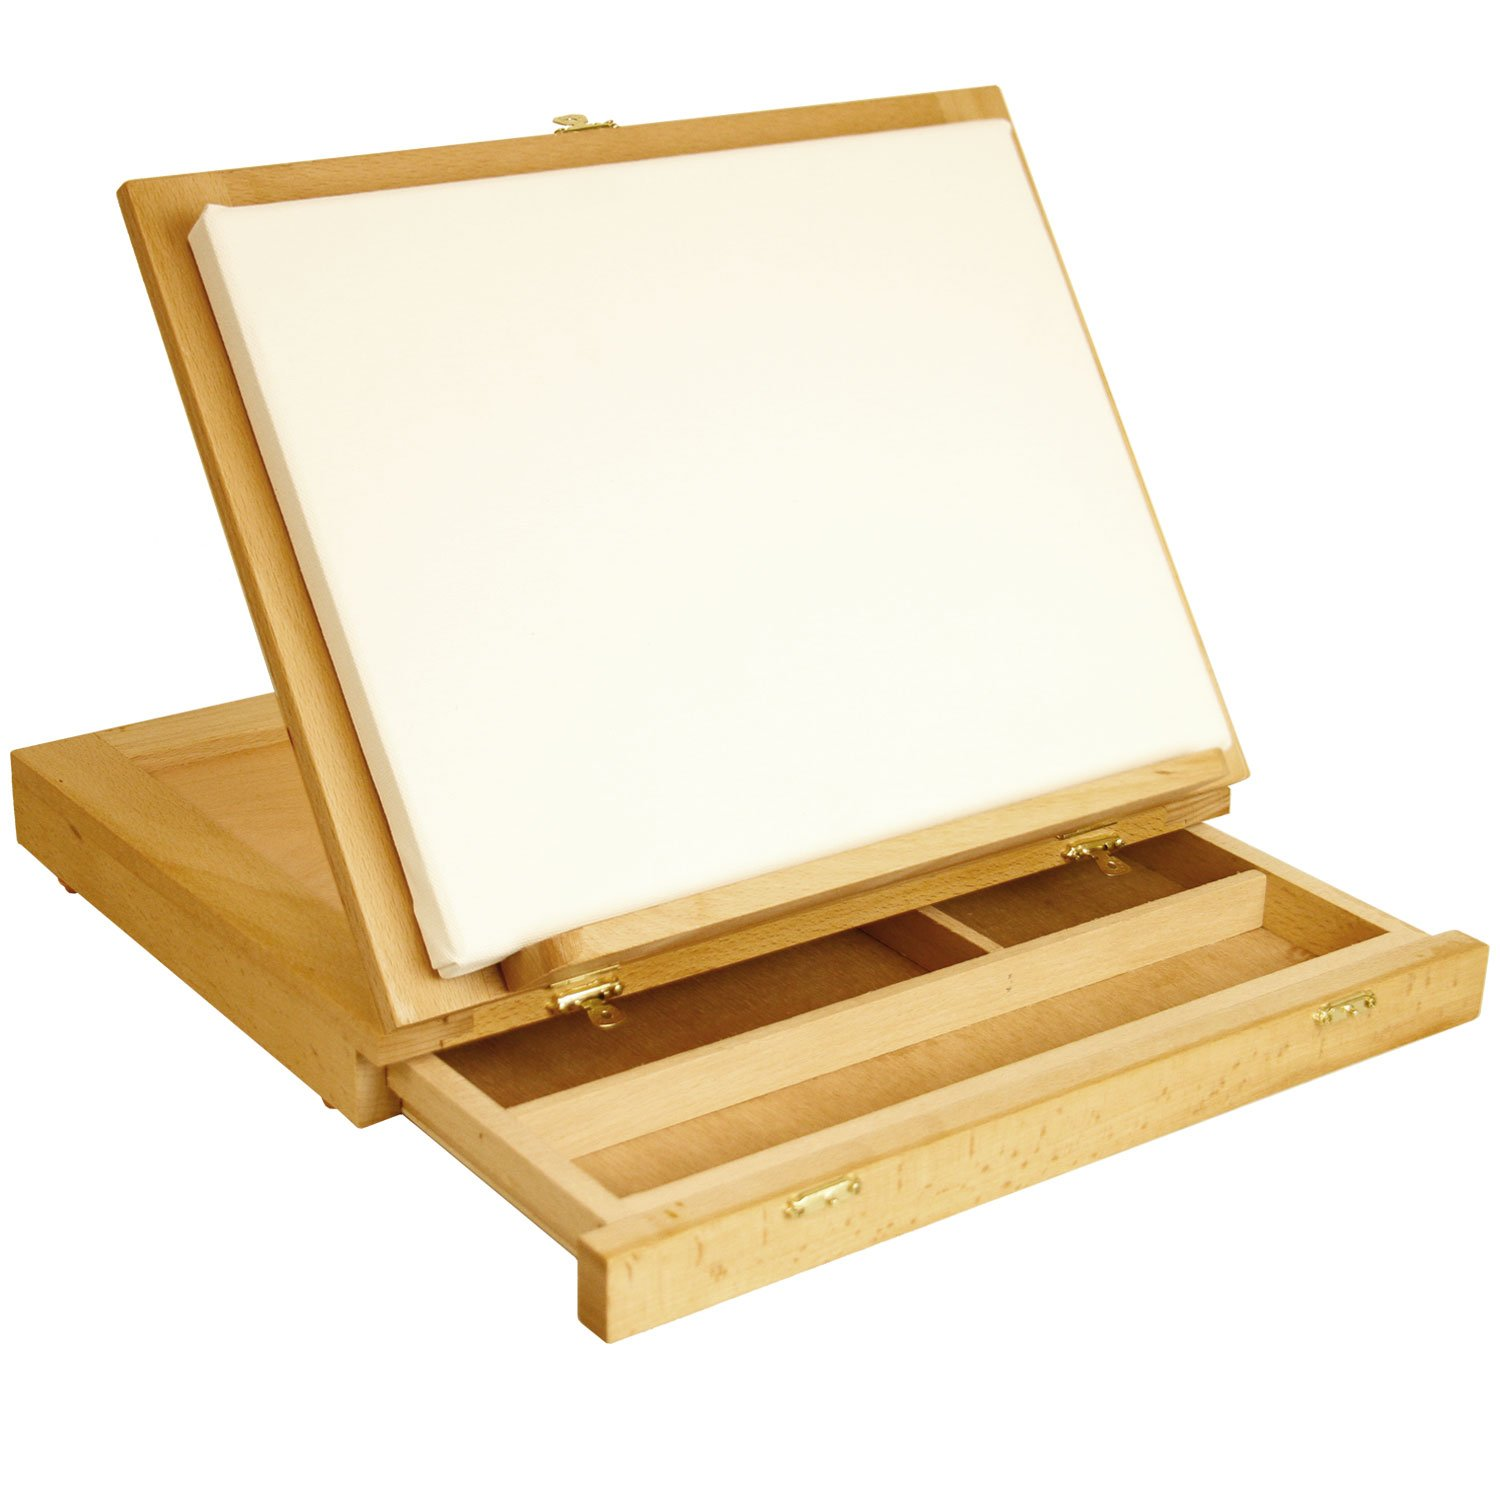 Table top drawing easel - Amazon Com Us Art Supply Solana Adjustable Wood Desk Table Easel With Storage Drawer Premium Beechwood